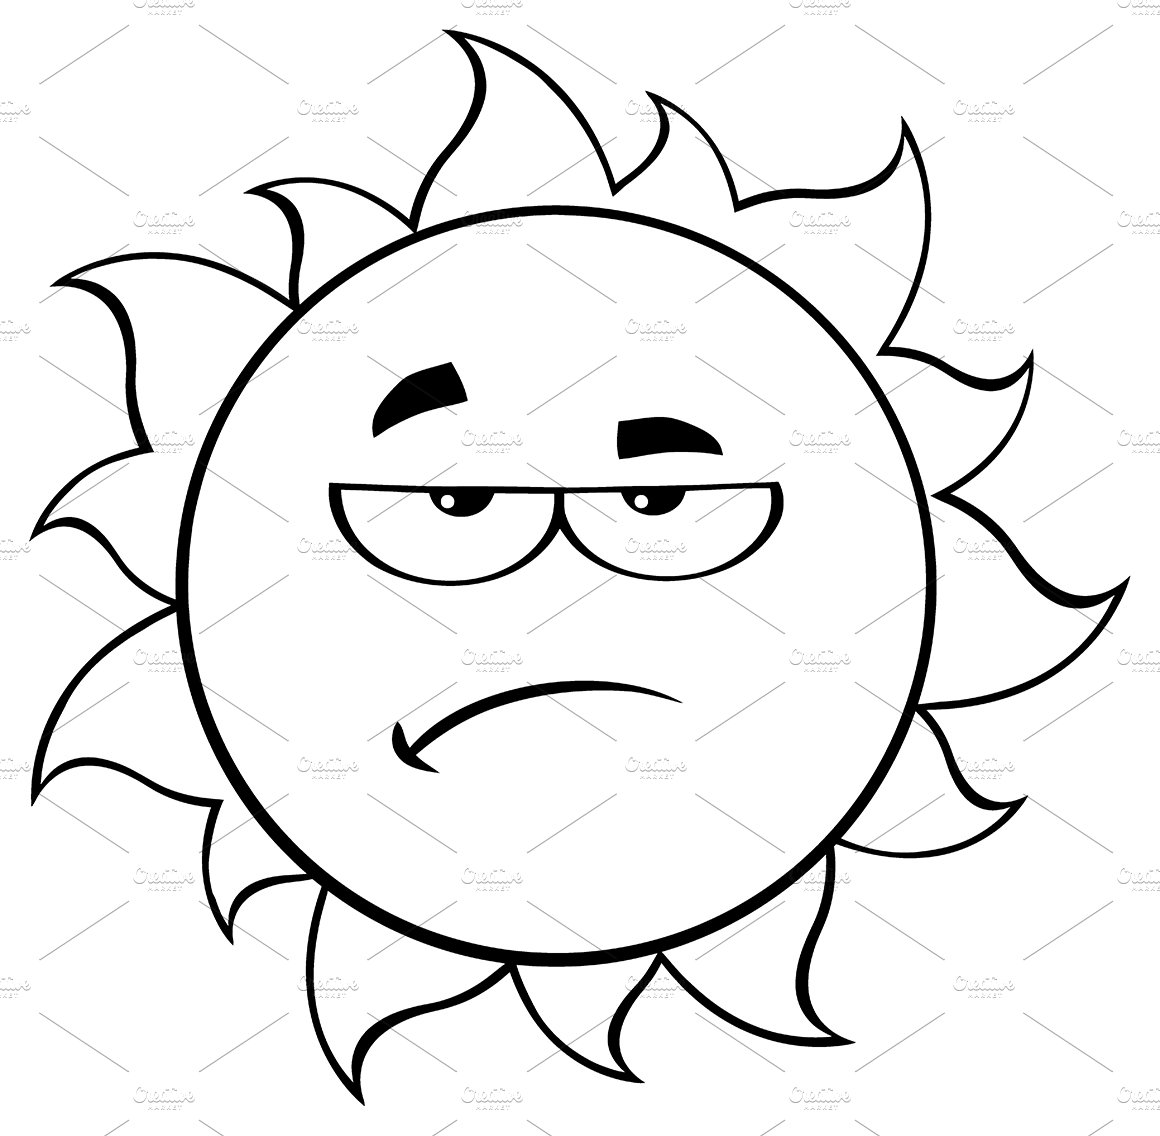 Black And White Grumpy Sun  Illustrations  Creative Market-8022